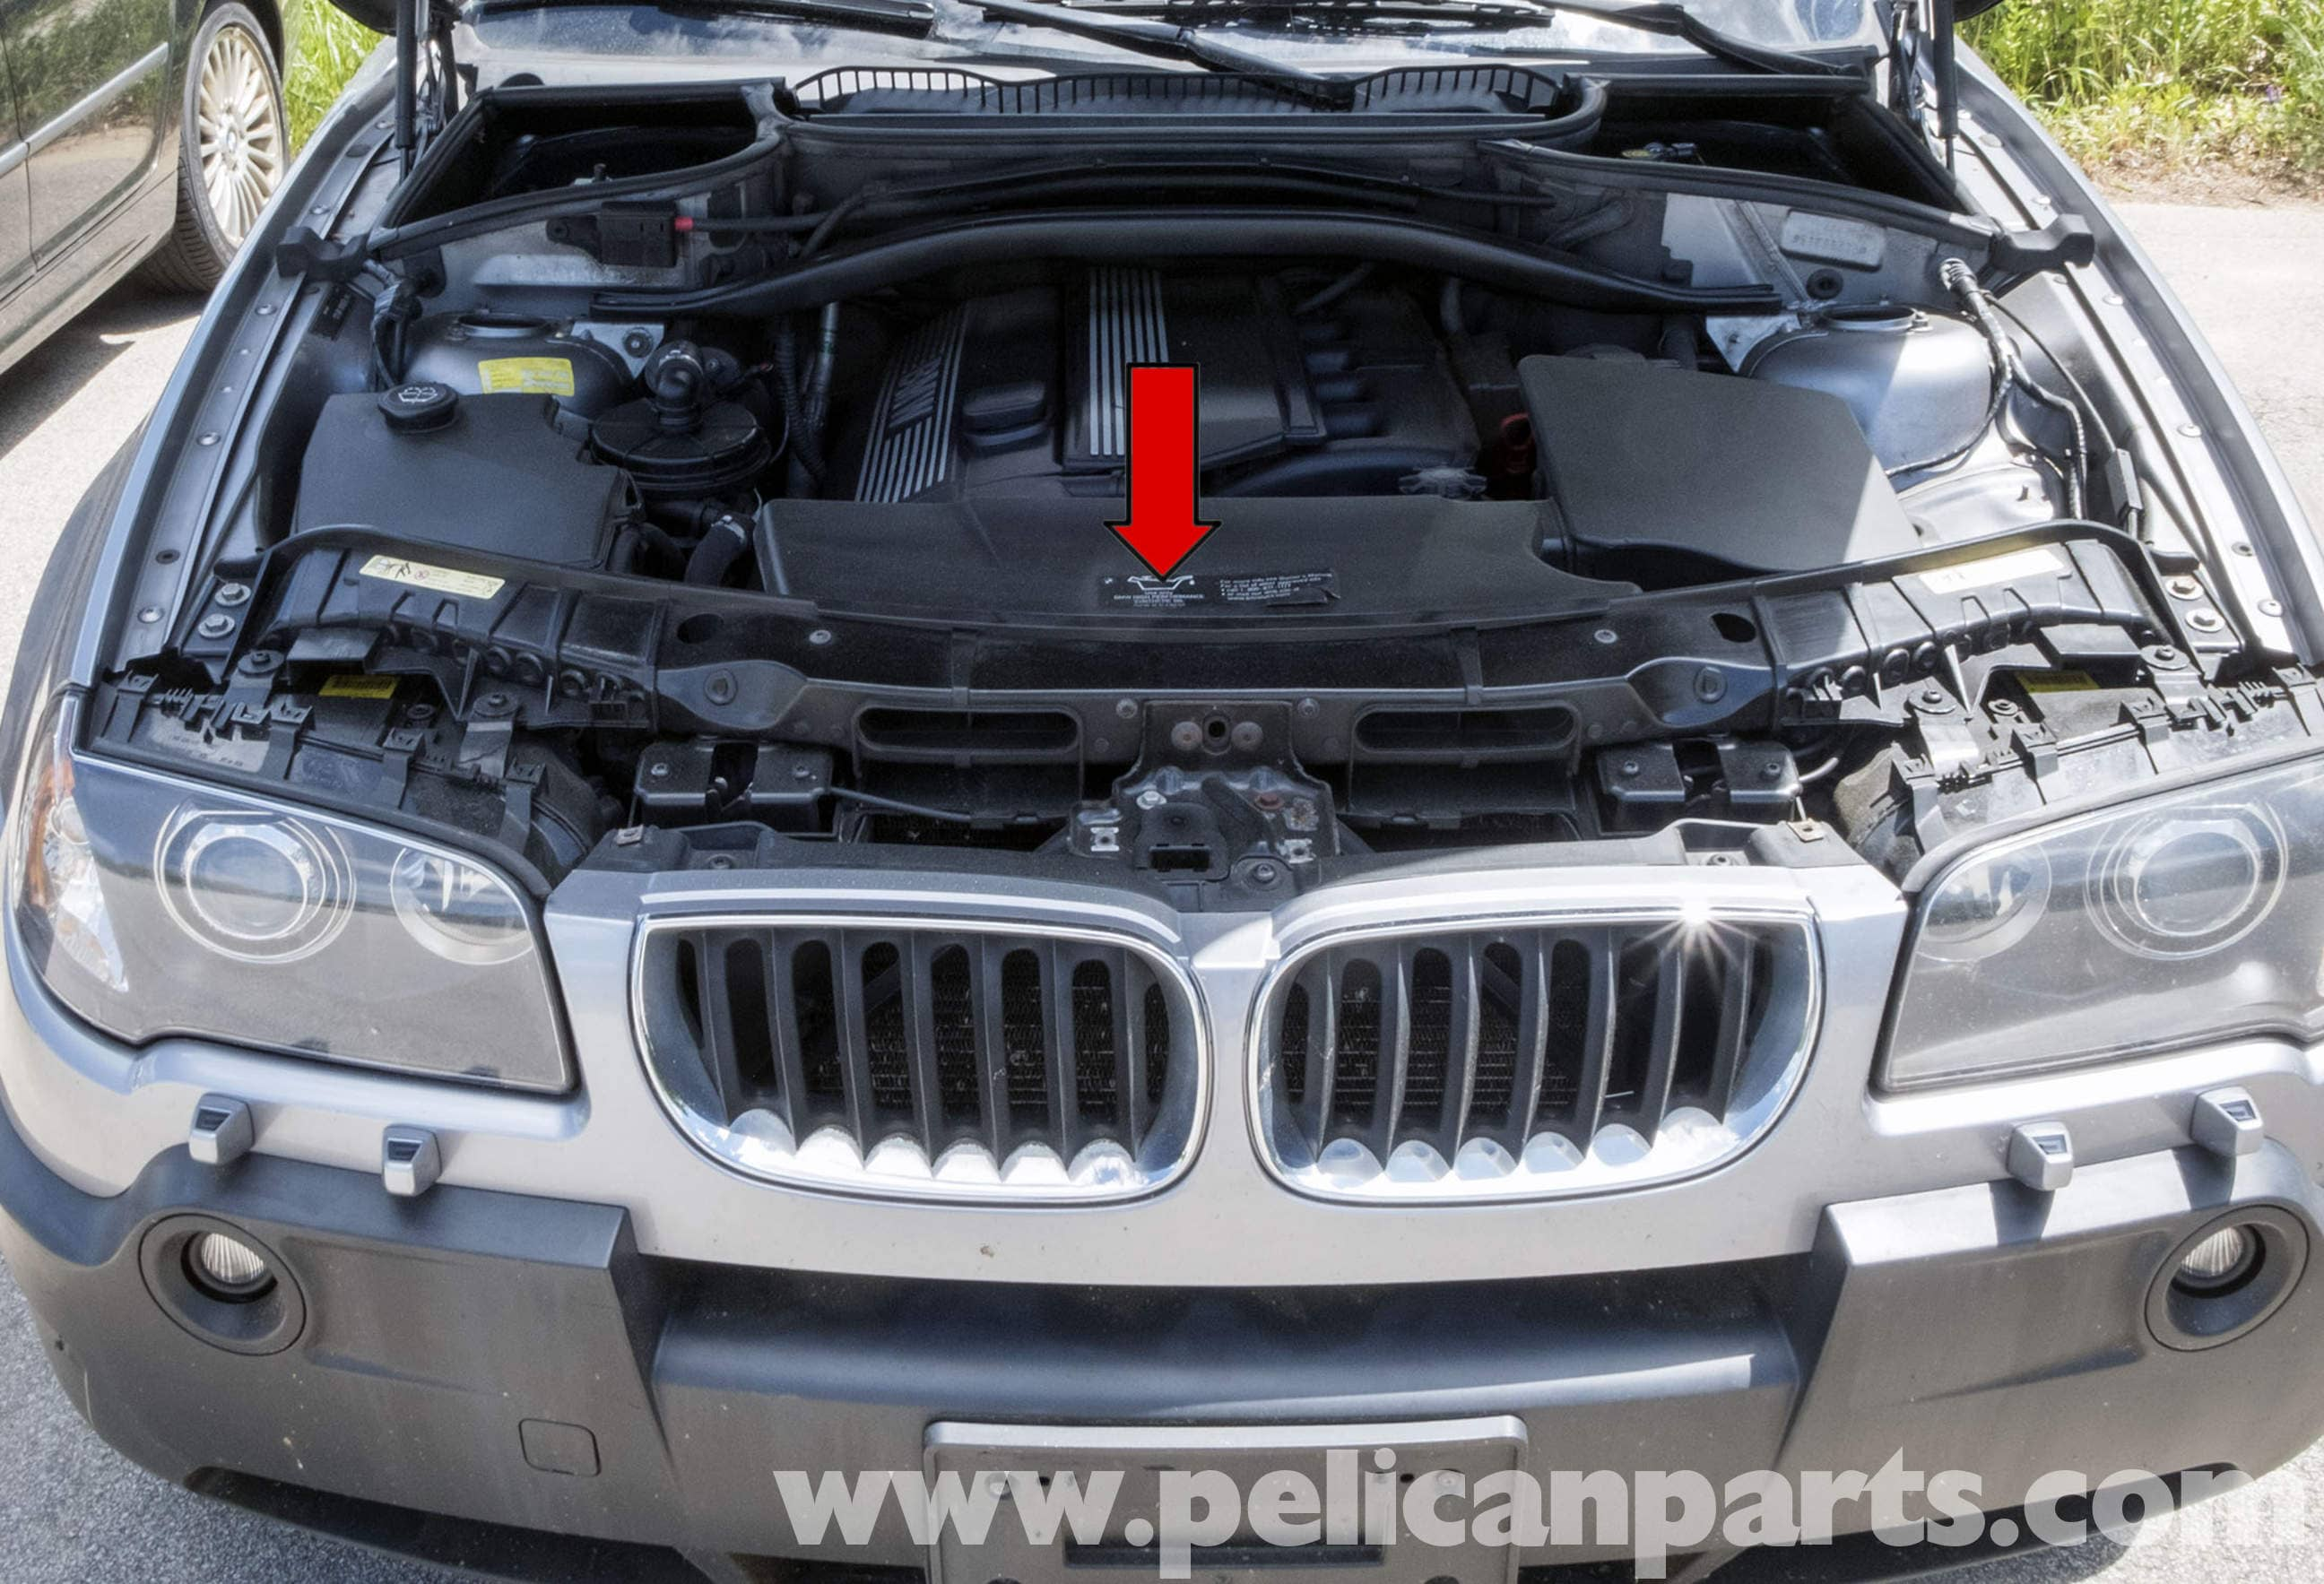 Pelican Technical Article Bmw X3 Engine Cooling Fan Replacement Mount E46 Fuel Filter Electric Large Image Extra